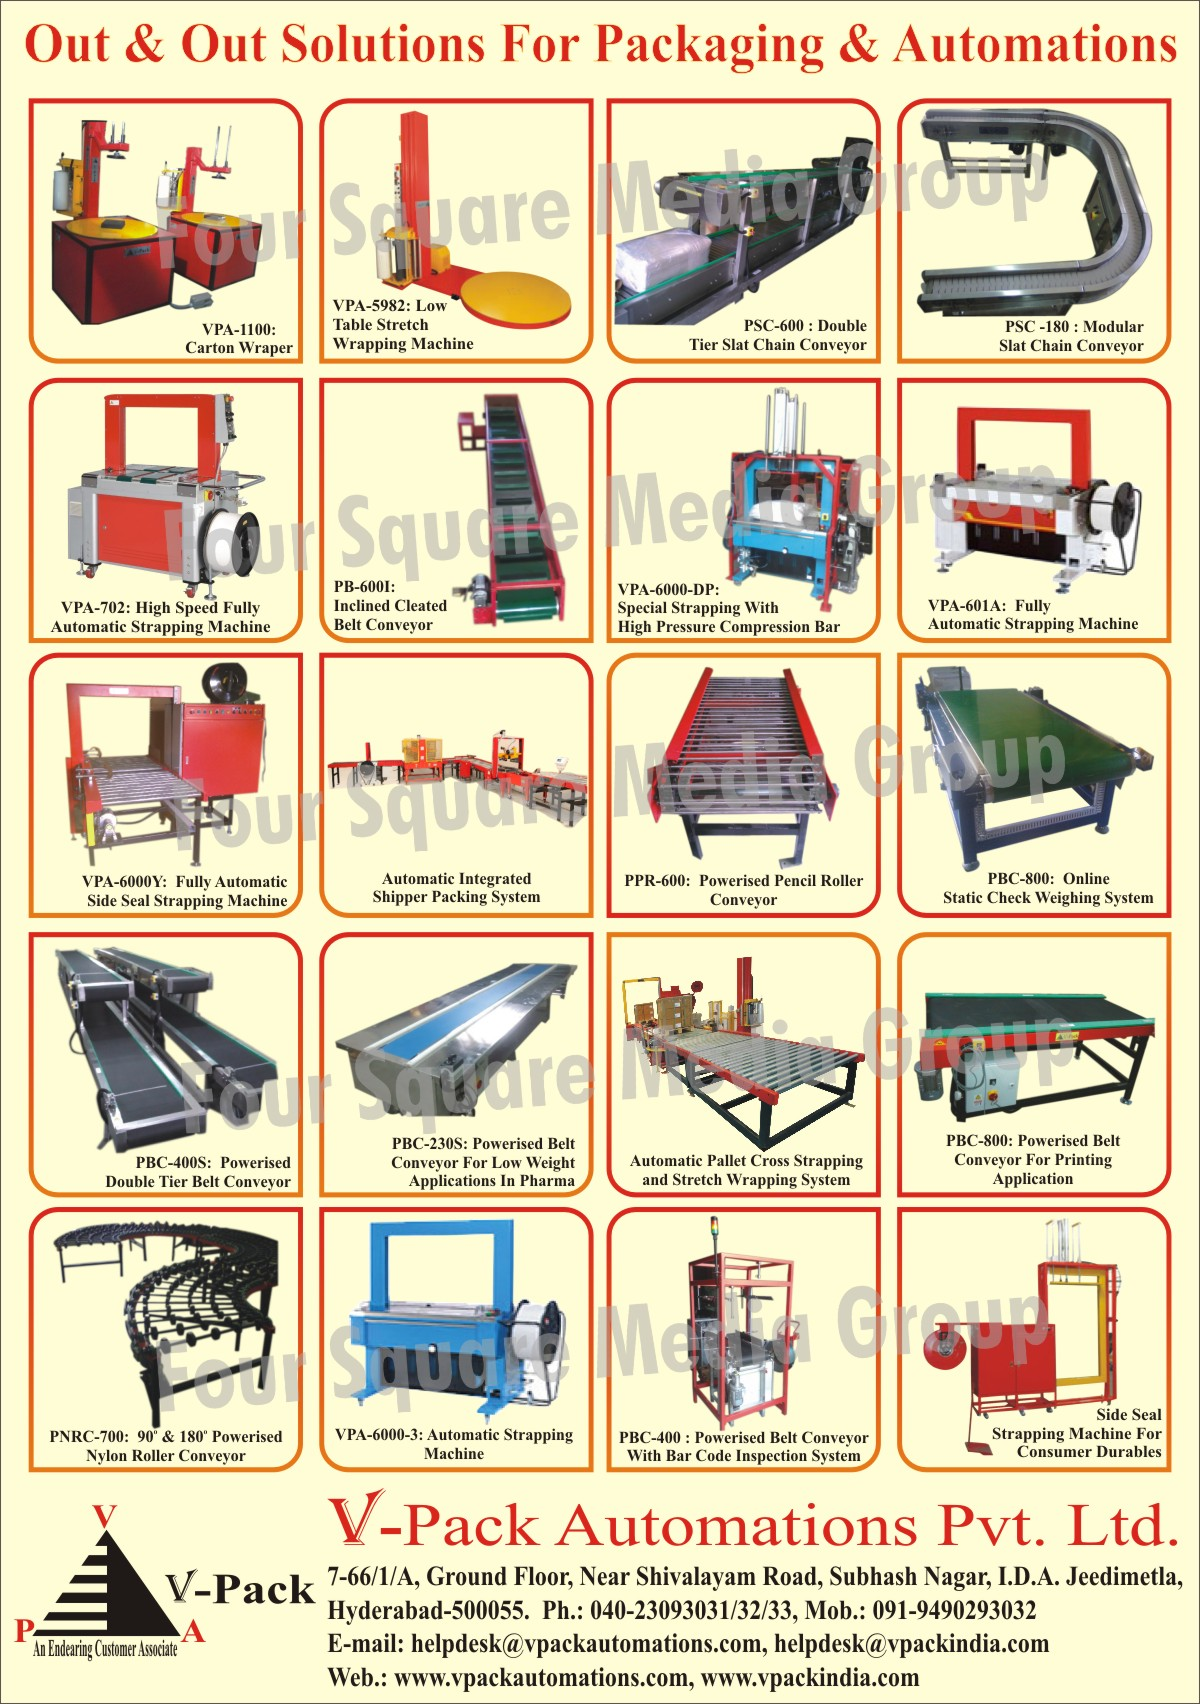 Carton Wrappers, Table Stretch Wrapping Machines, Double Tier Slat Chain Conveyors, Inclined Cleated Belt Conveyors, Strapping Machines, Shipper Packing Systems, Nylon Roller Conveyors, Belt Conveyors, Static Check Weighing Systems, Powerised Pencil Roller Conveyors